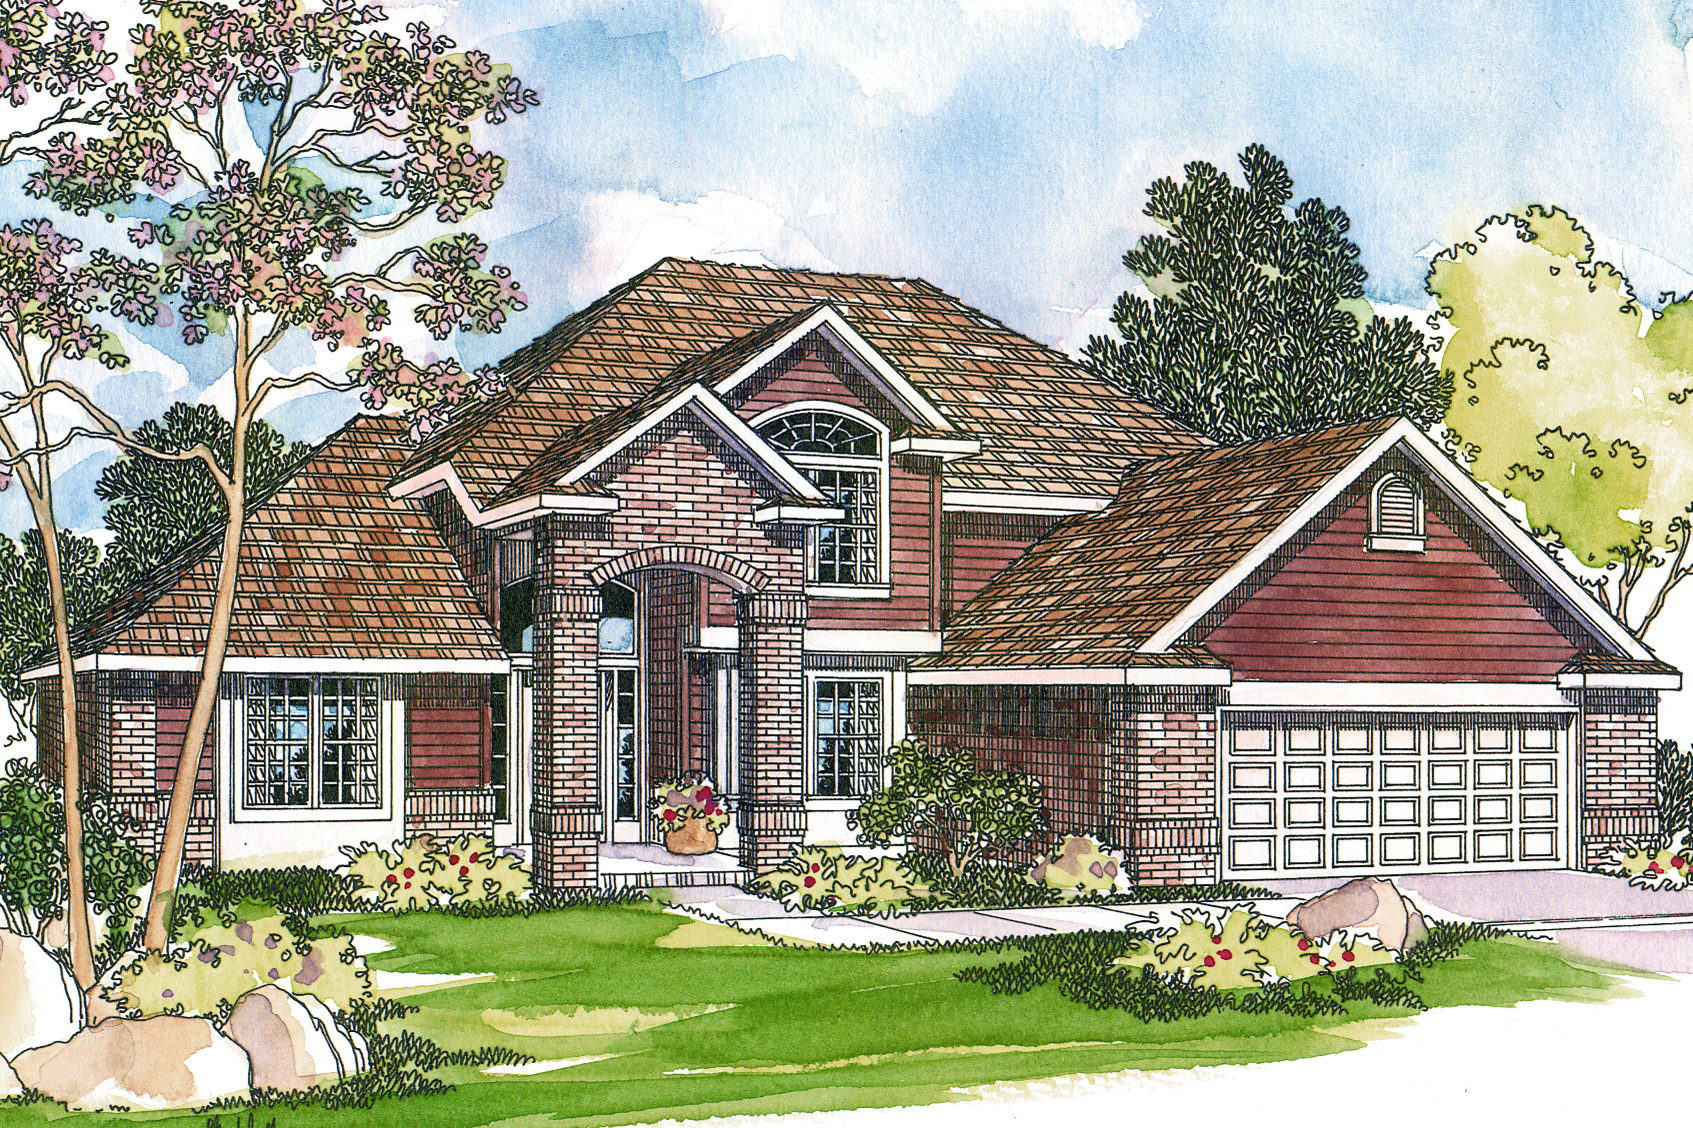 Traditional House Plan, Home Plan, Coleridge 30-251, 3 Bedrooms, View House Plan